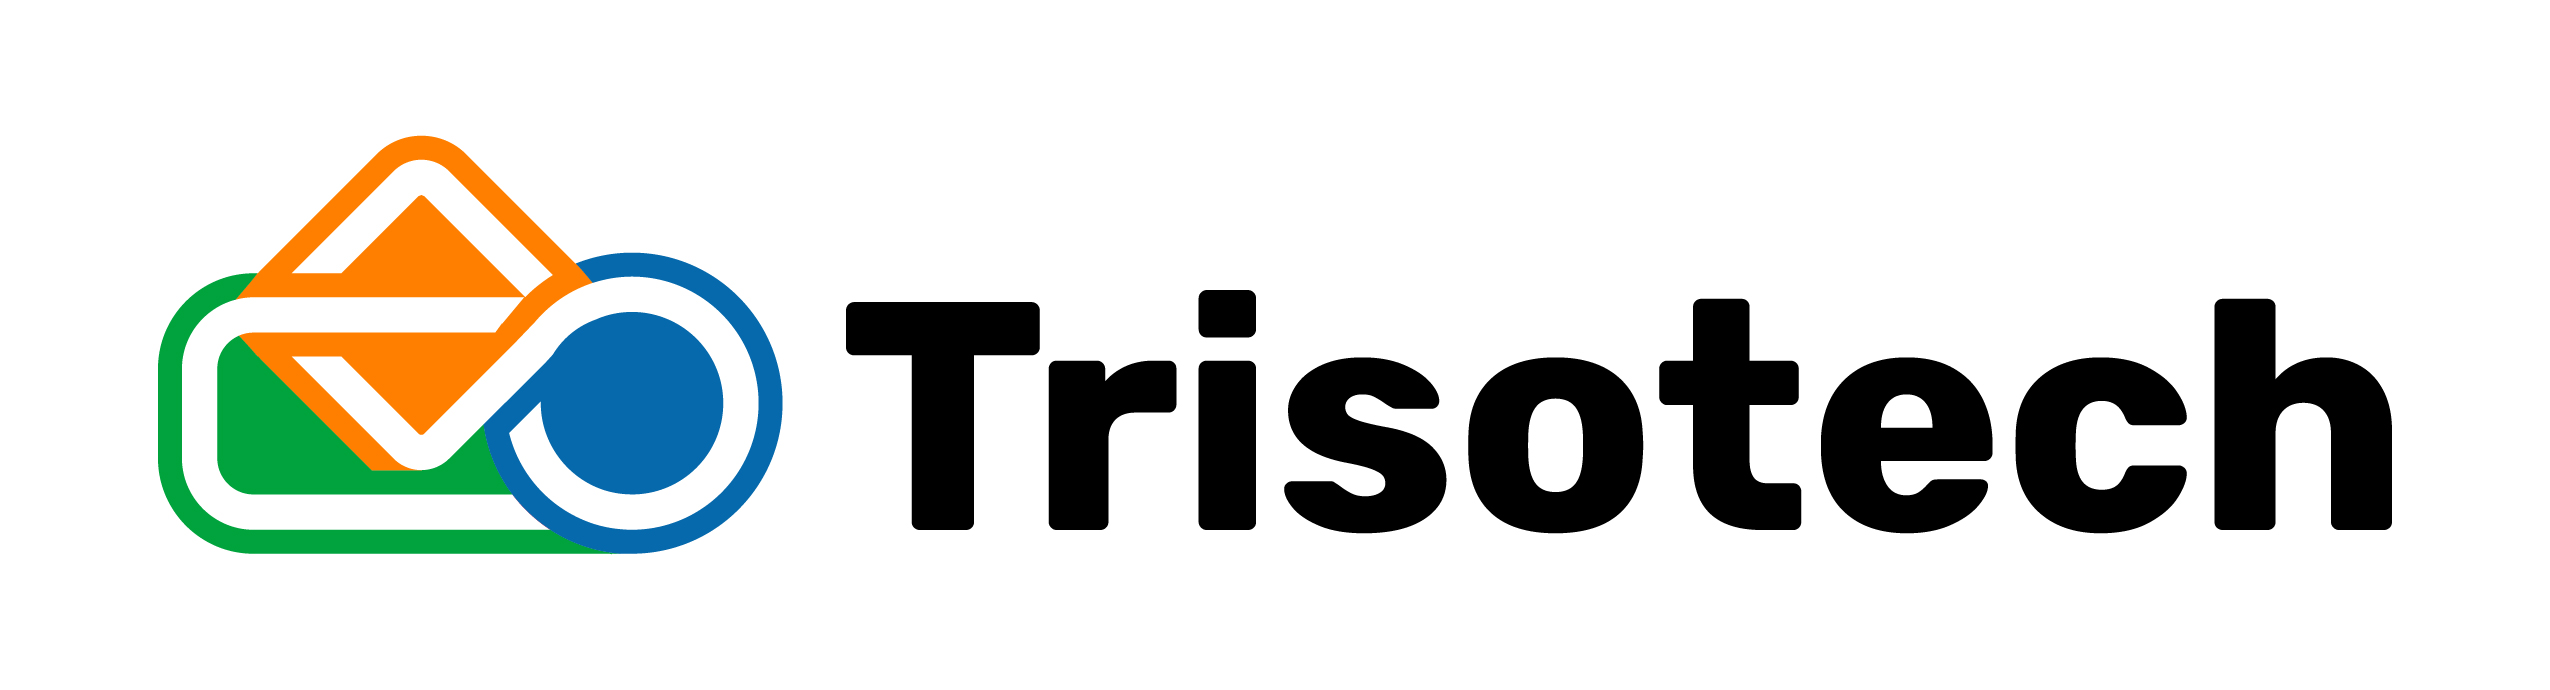 "Trisotech to Participate in ""Veteran Care Without Boundaries"" Demonstration at the HIMSS 2020 Interoperability Showcase"